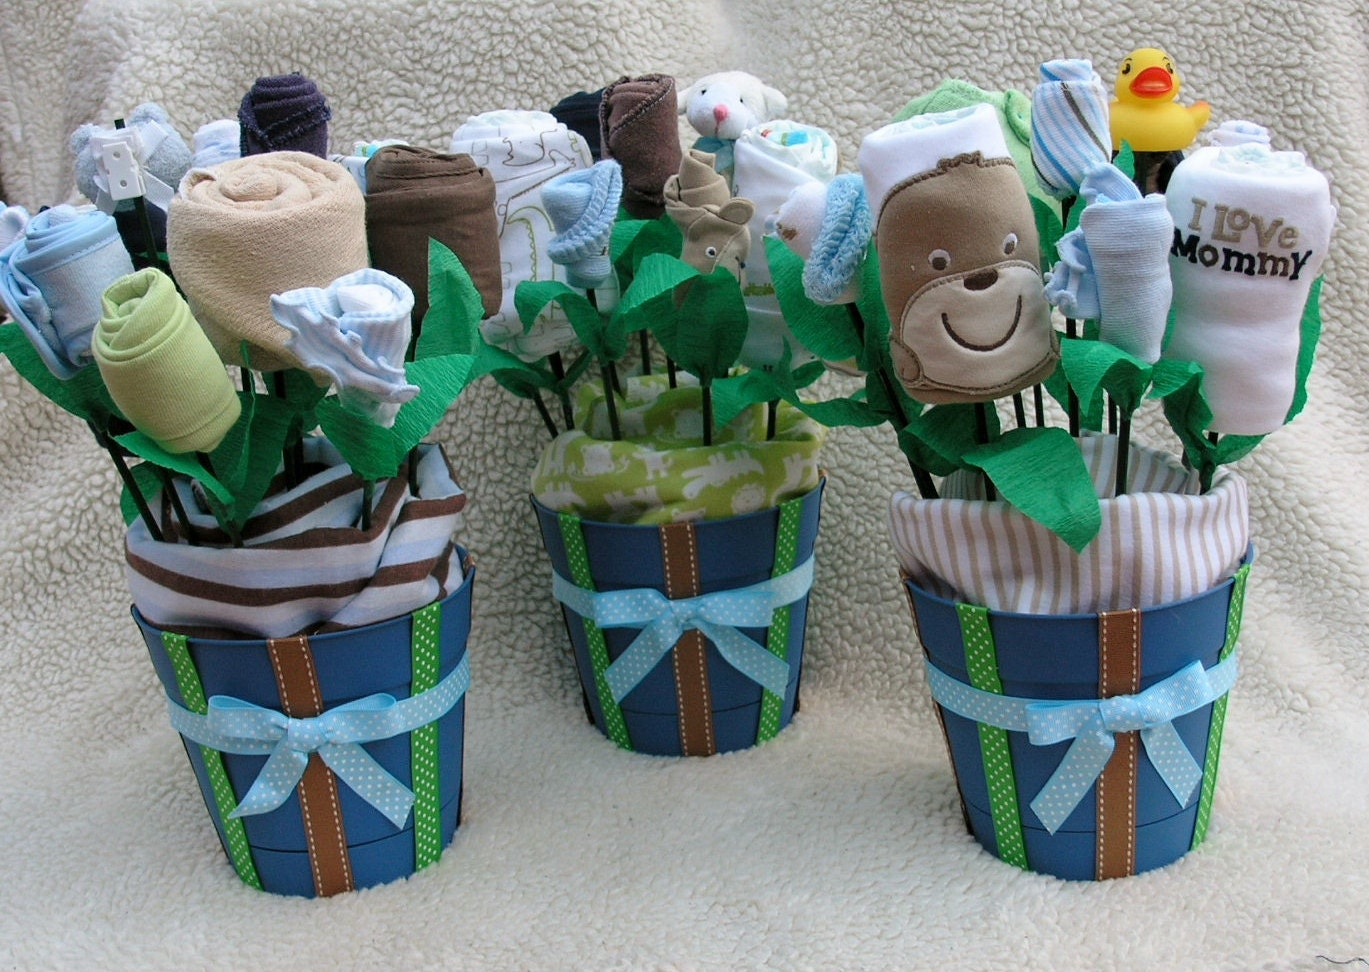 Duck baby shower on pinterest rubber duck baby boy for Baby boy decoration